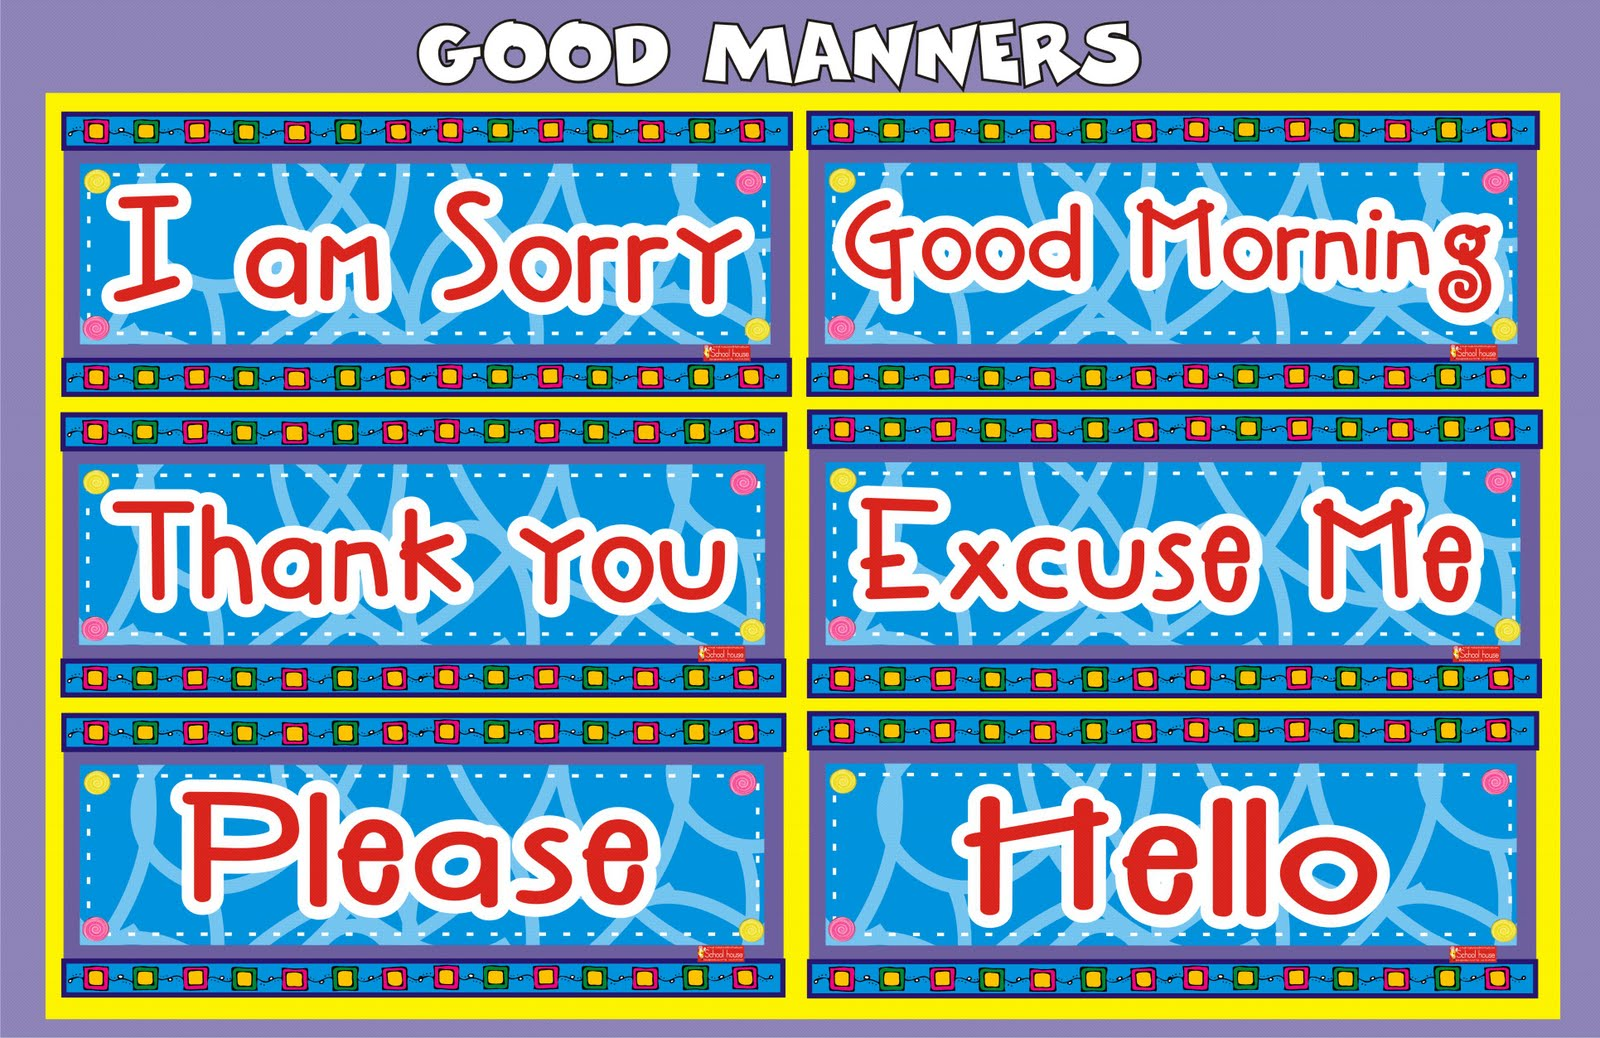 do you think good manners are a waste of time in the modern world it is 9 00 am you are in your fine sedan travelling around the roads of mumbai gushing through the unpredictable traffic you are having one of your